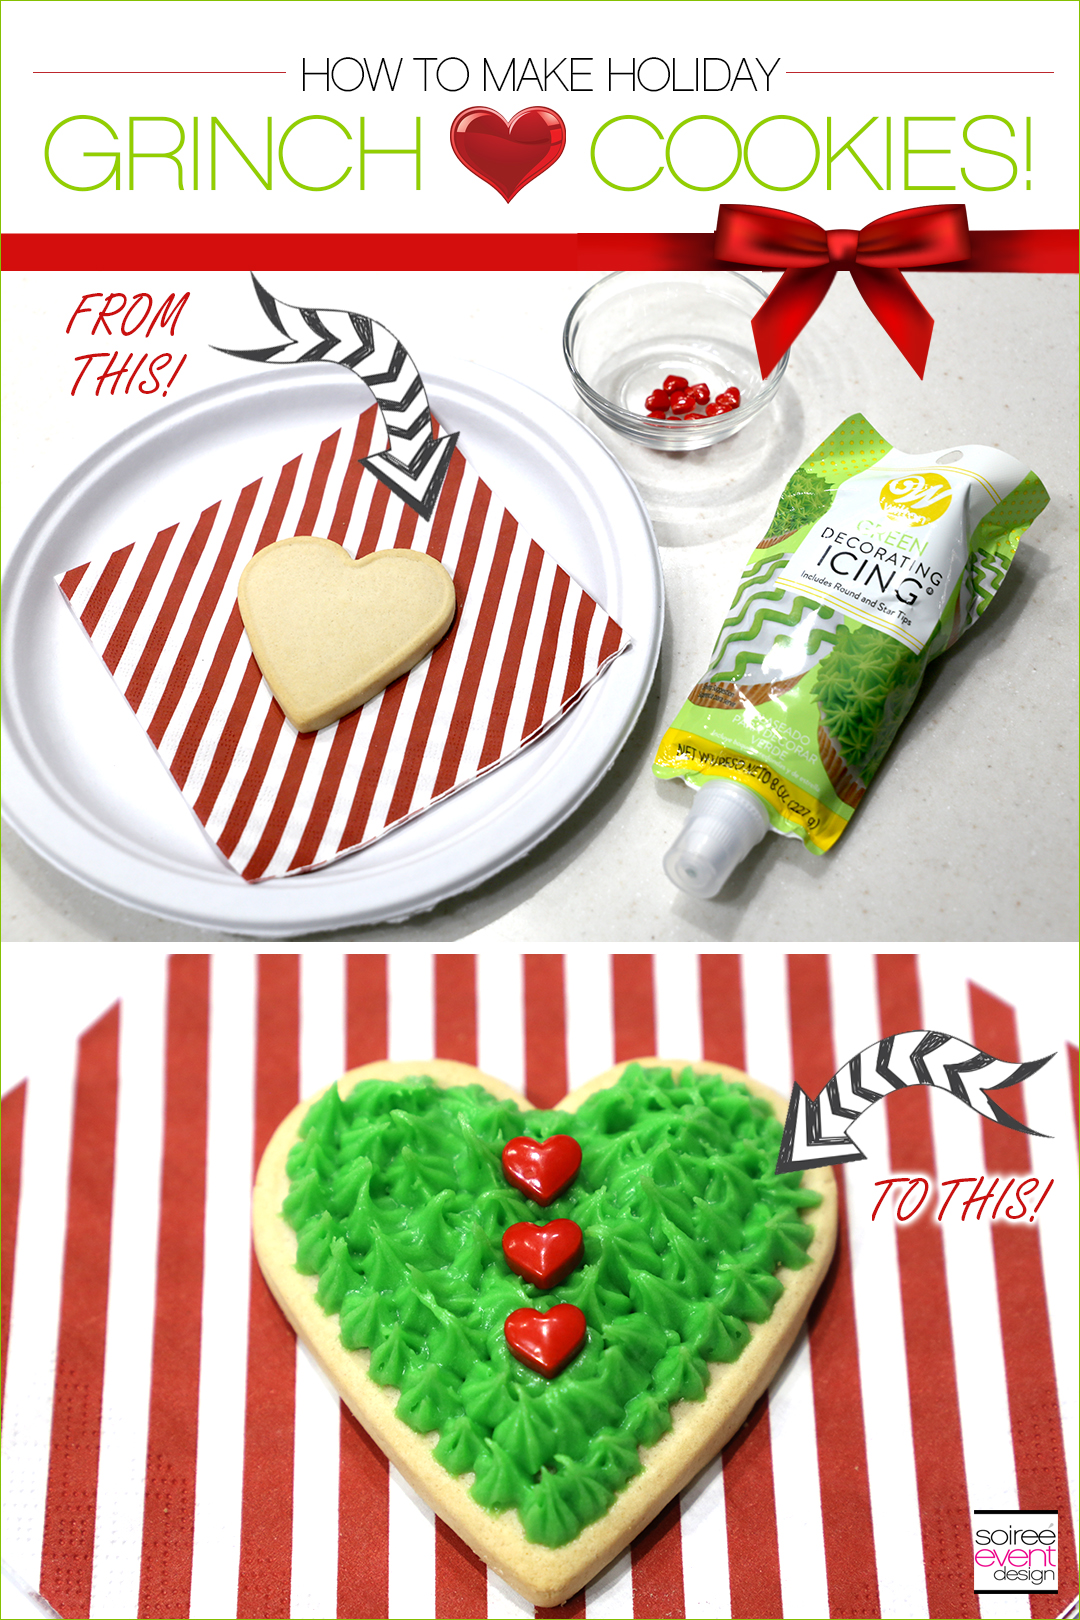 Grinch Dessert Ideas - Grinch Heart Cookies Tutorial